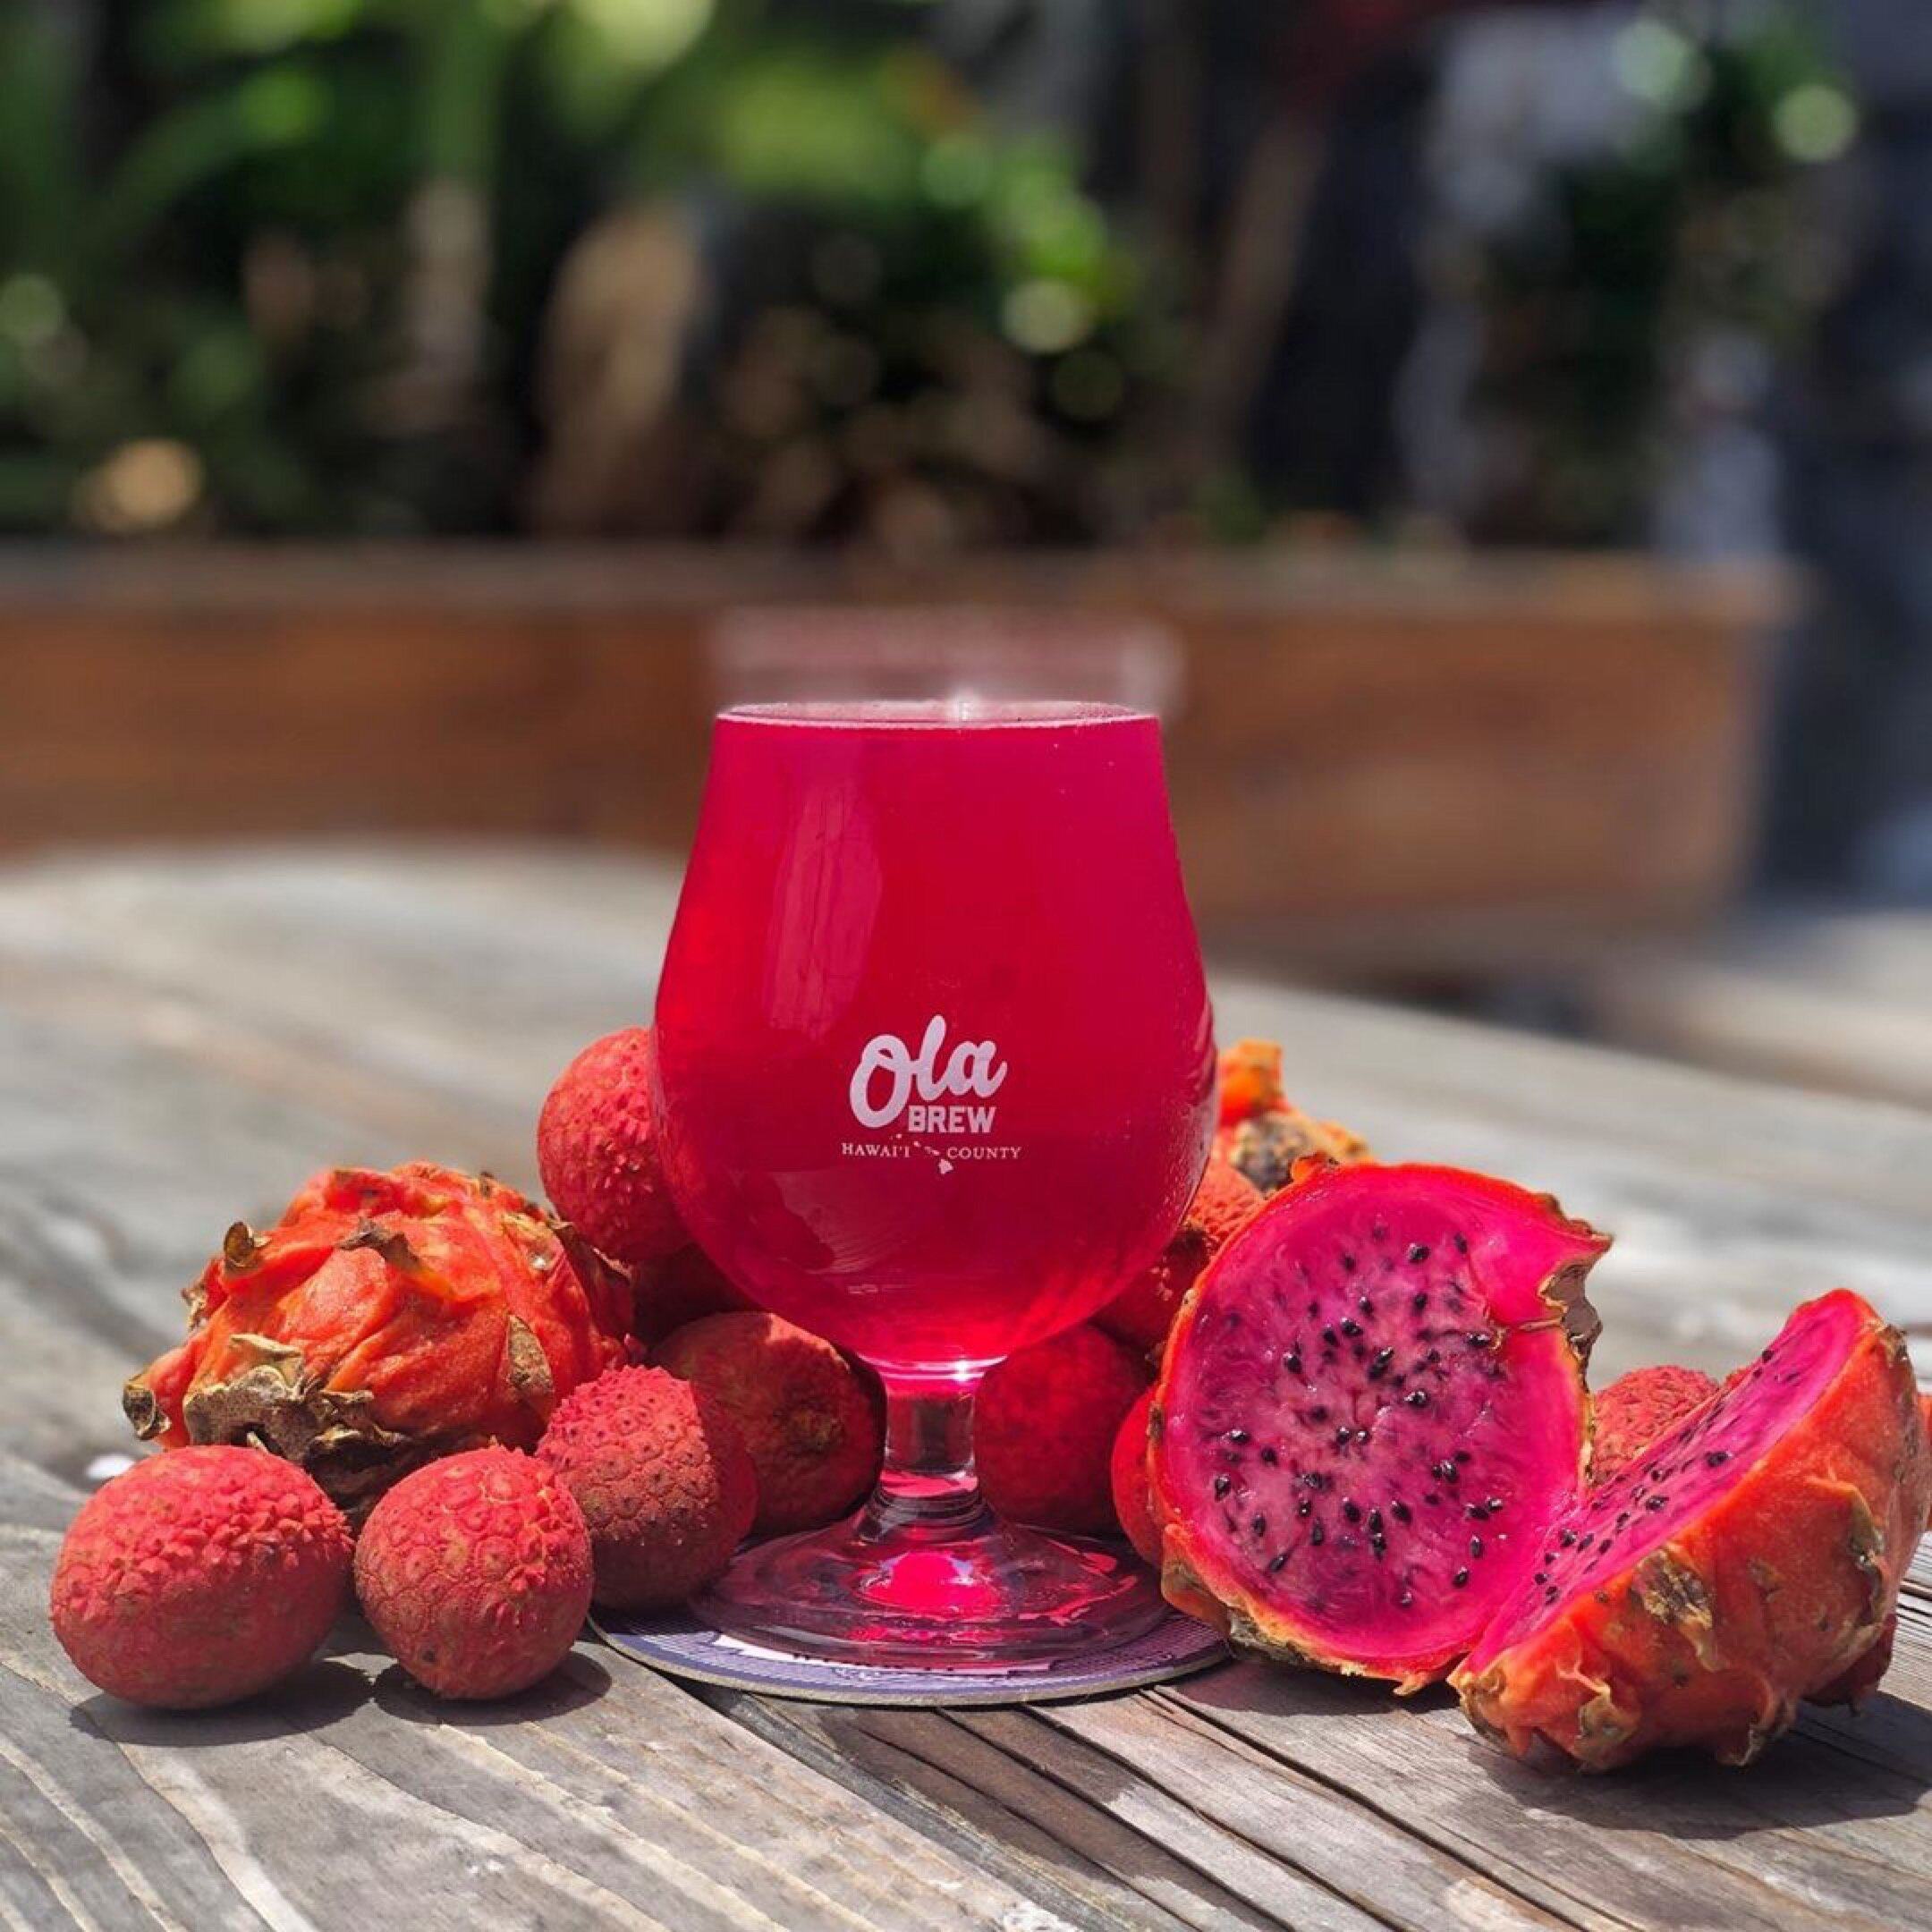 Ola Brew's Dragonfruit and Lychee hard cider. Courtesy photo.